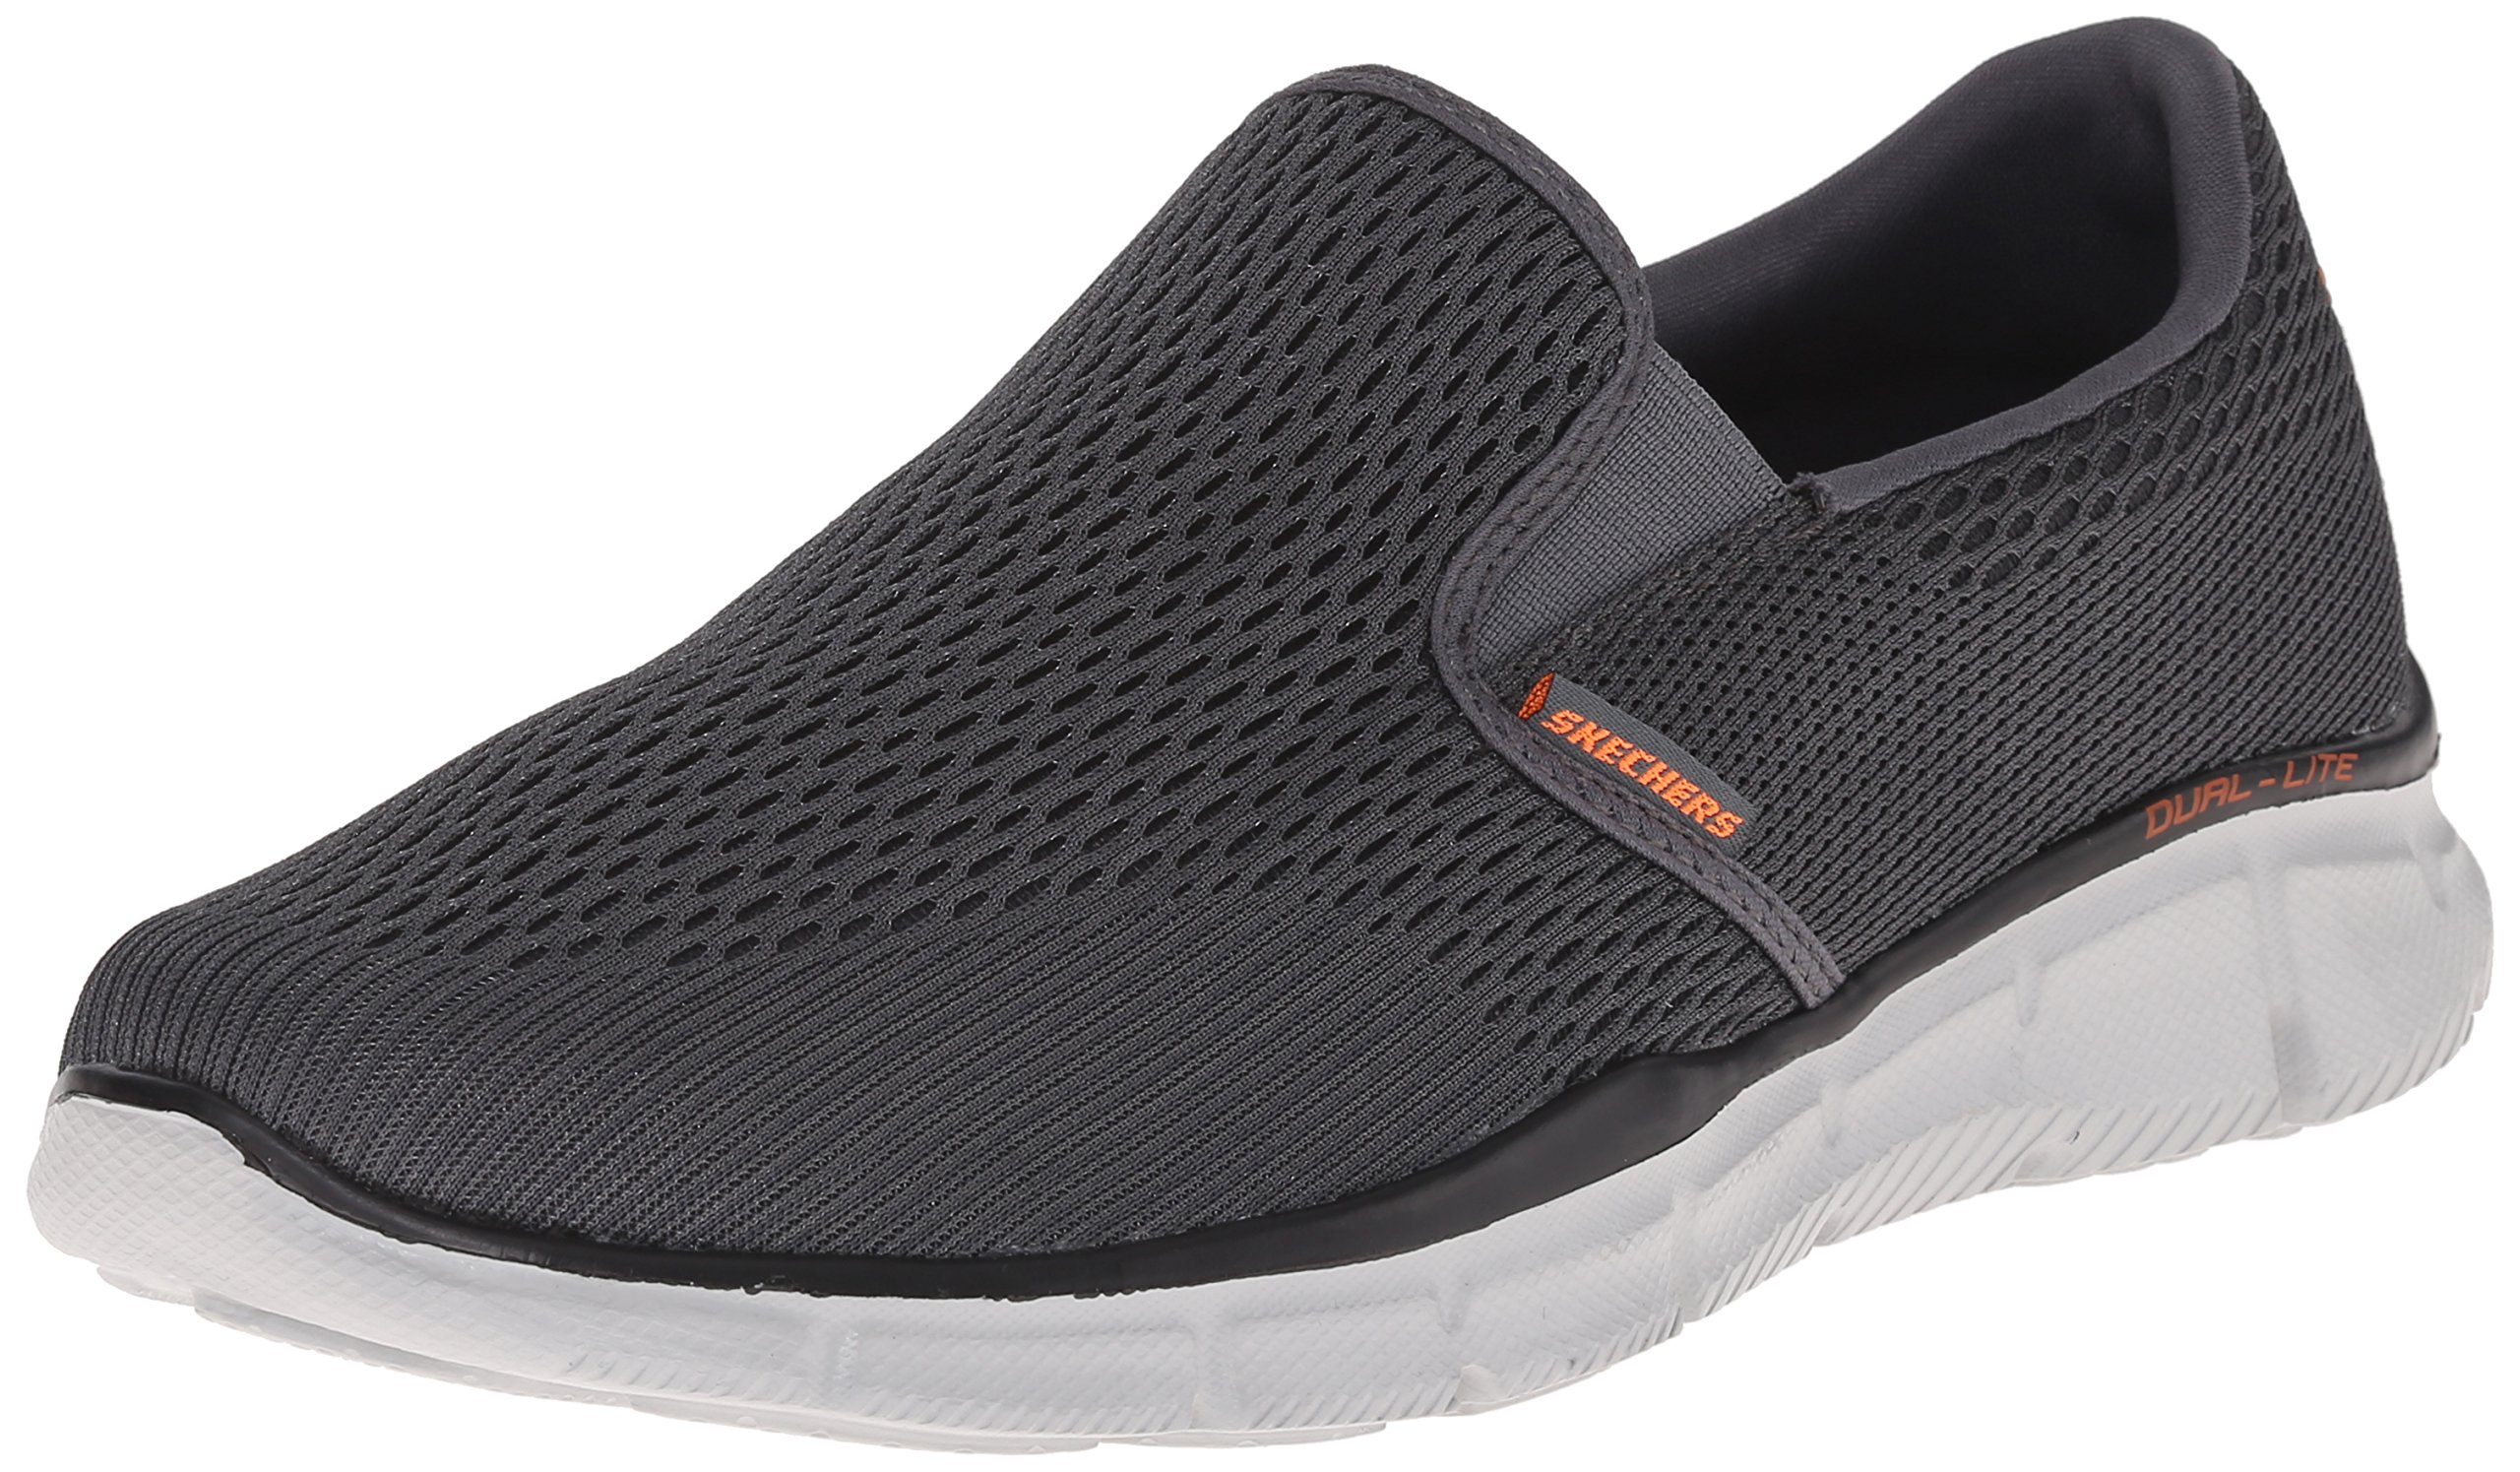 Skechers Men's Equalizer Double Play Slip-On Loafer,Charcoal/Orange,11 M US